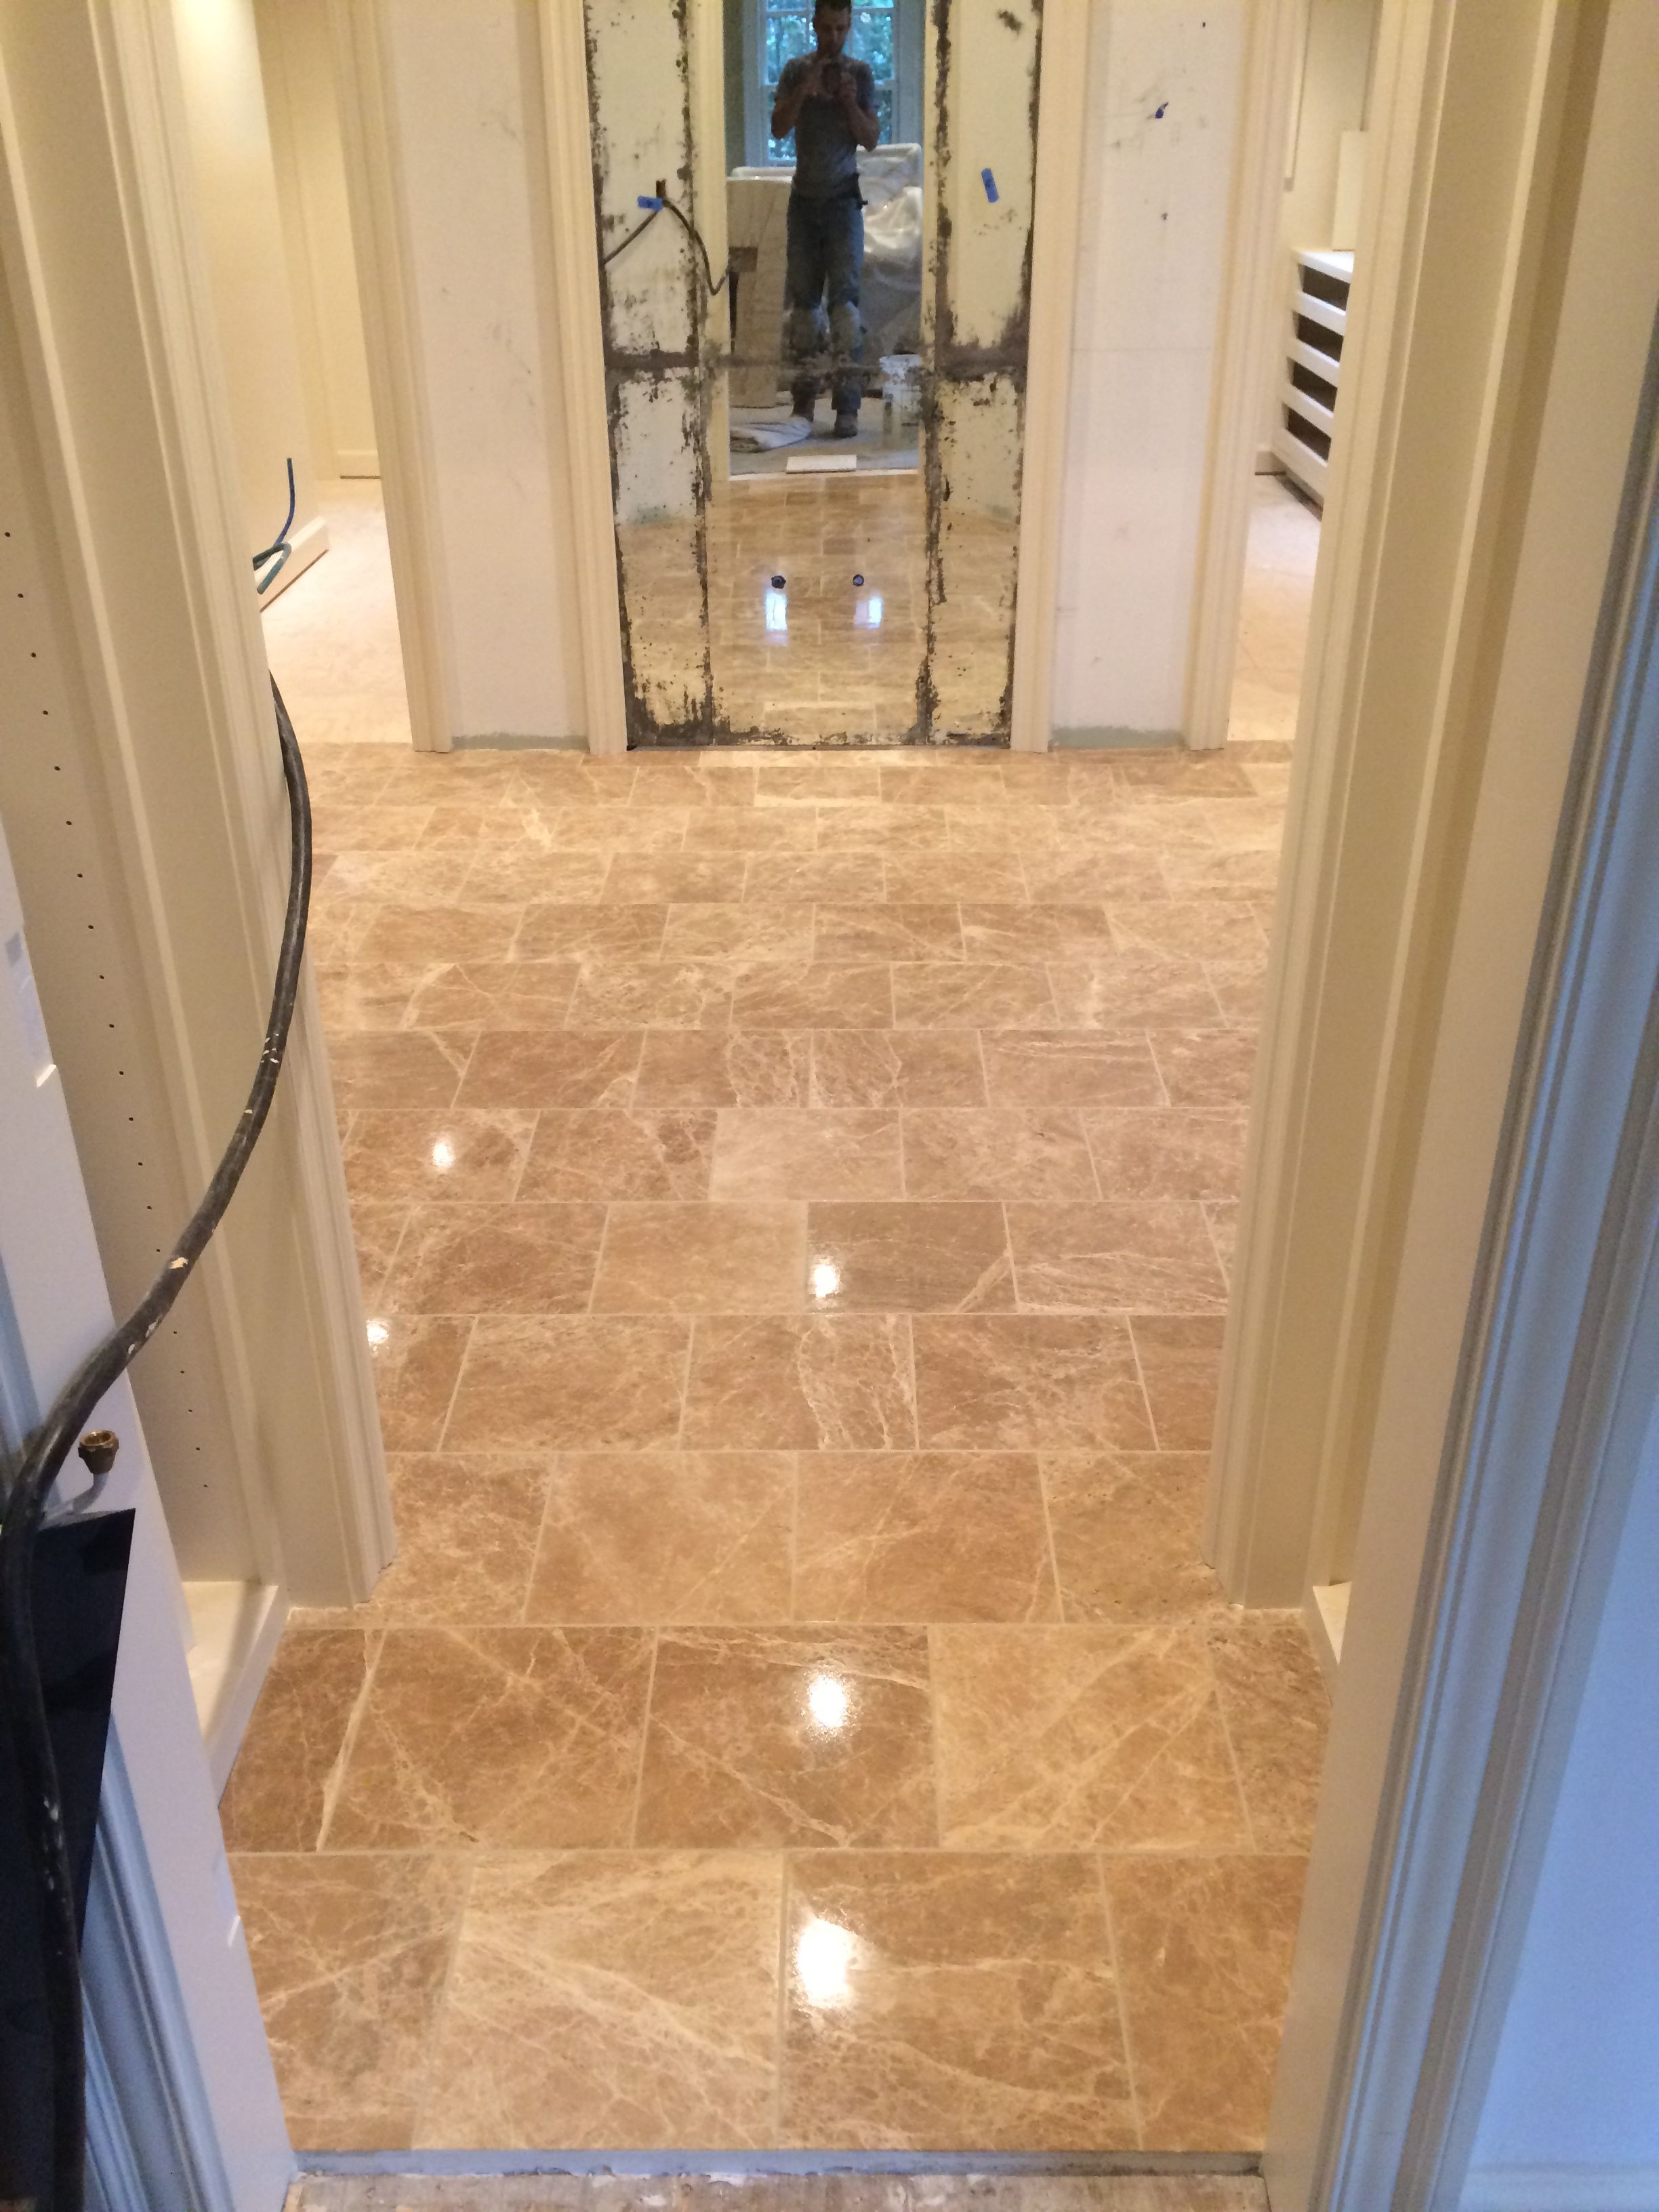 The Classiness Of A Great 12x12 Polished Marble Installation Over Mud Floor With Heat Cable Turned Out Beautiful And Shiny As Glass Flooring Home Installation